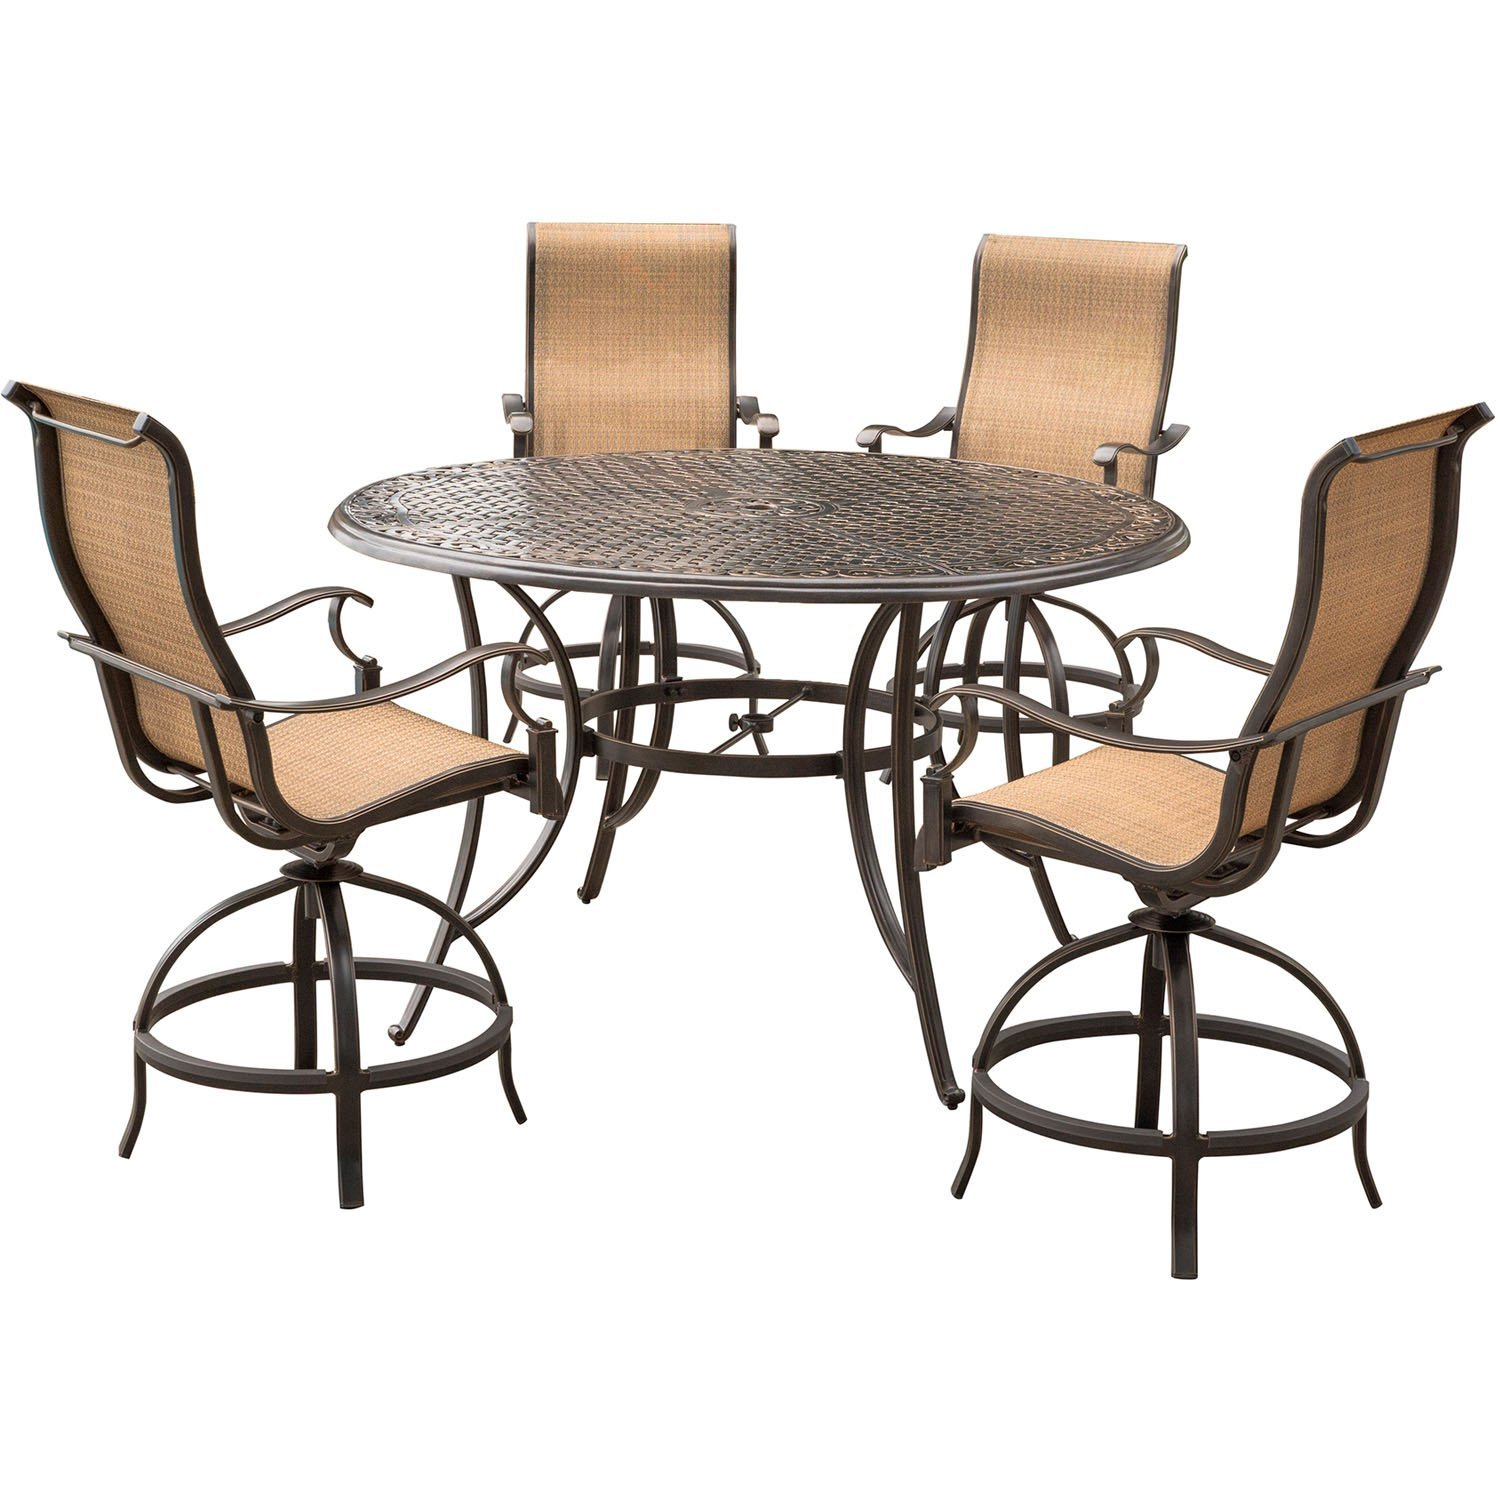 """Hanover MANDN5PC-BR Manor 5Piece High-Dining Set with a 56"""" Cast-Top Table & 4 Counter-Height Swivel Chairs, Tan (Pack of 5)"""